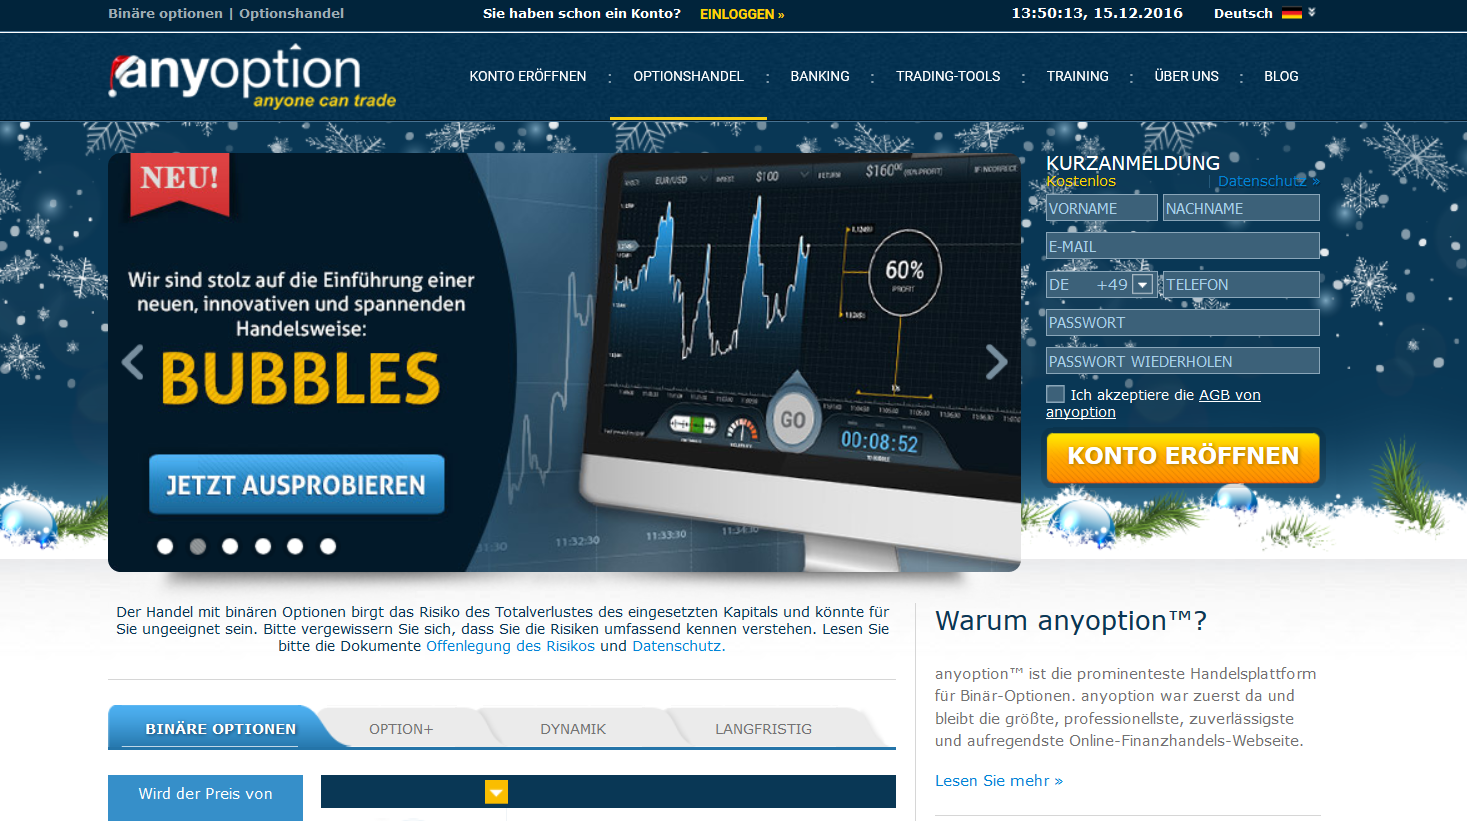 Bubbles Trading bei anyoption